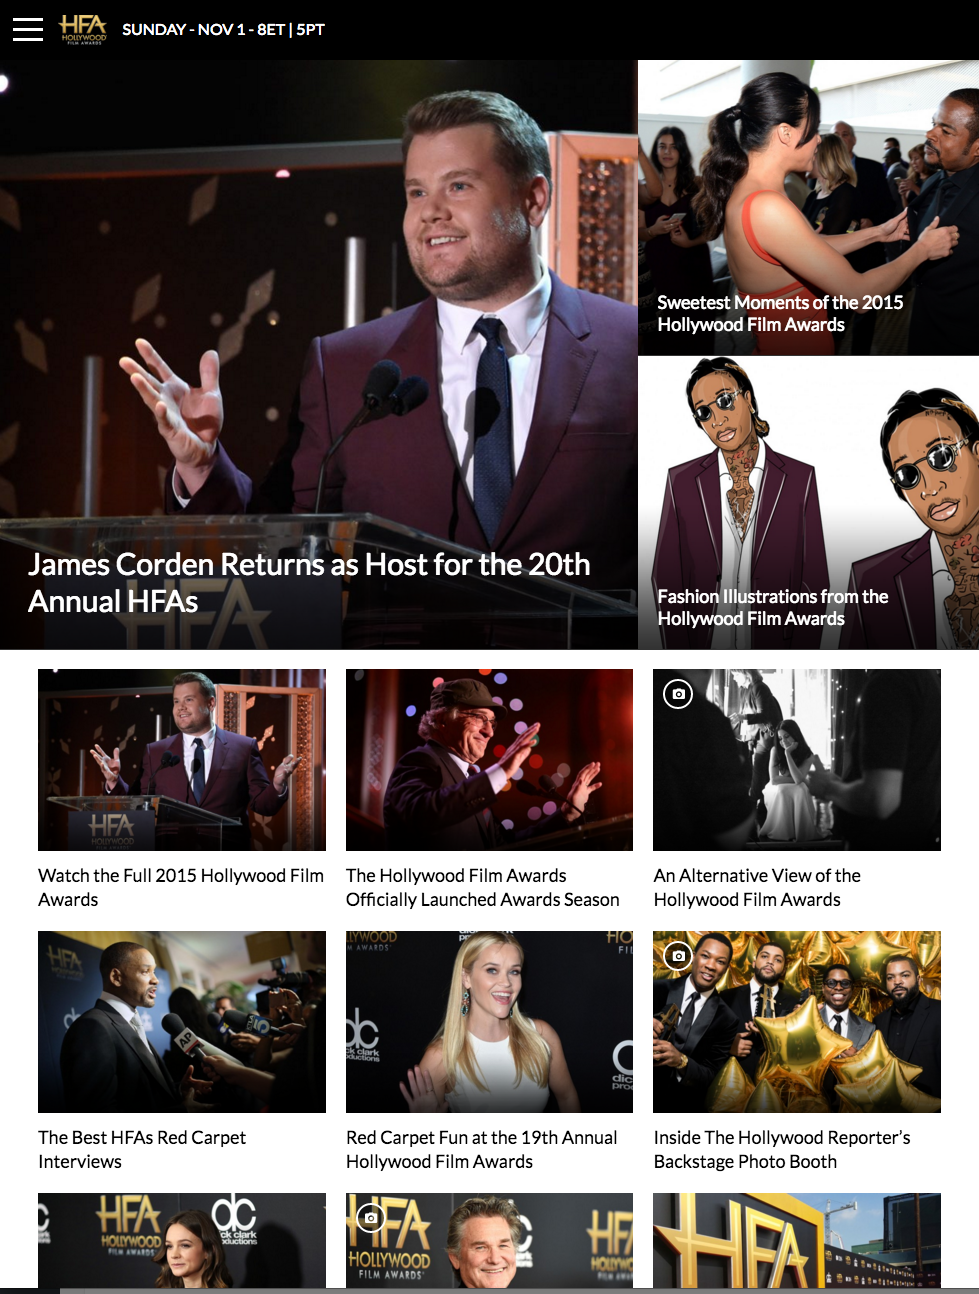 2016 HFAs website frontpage